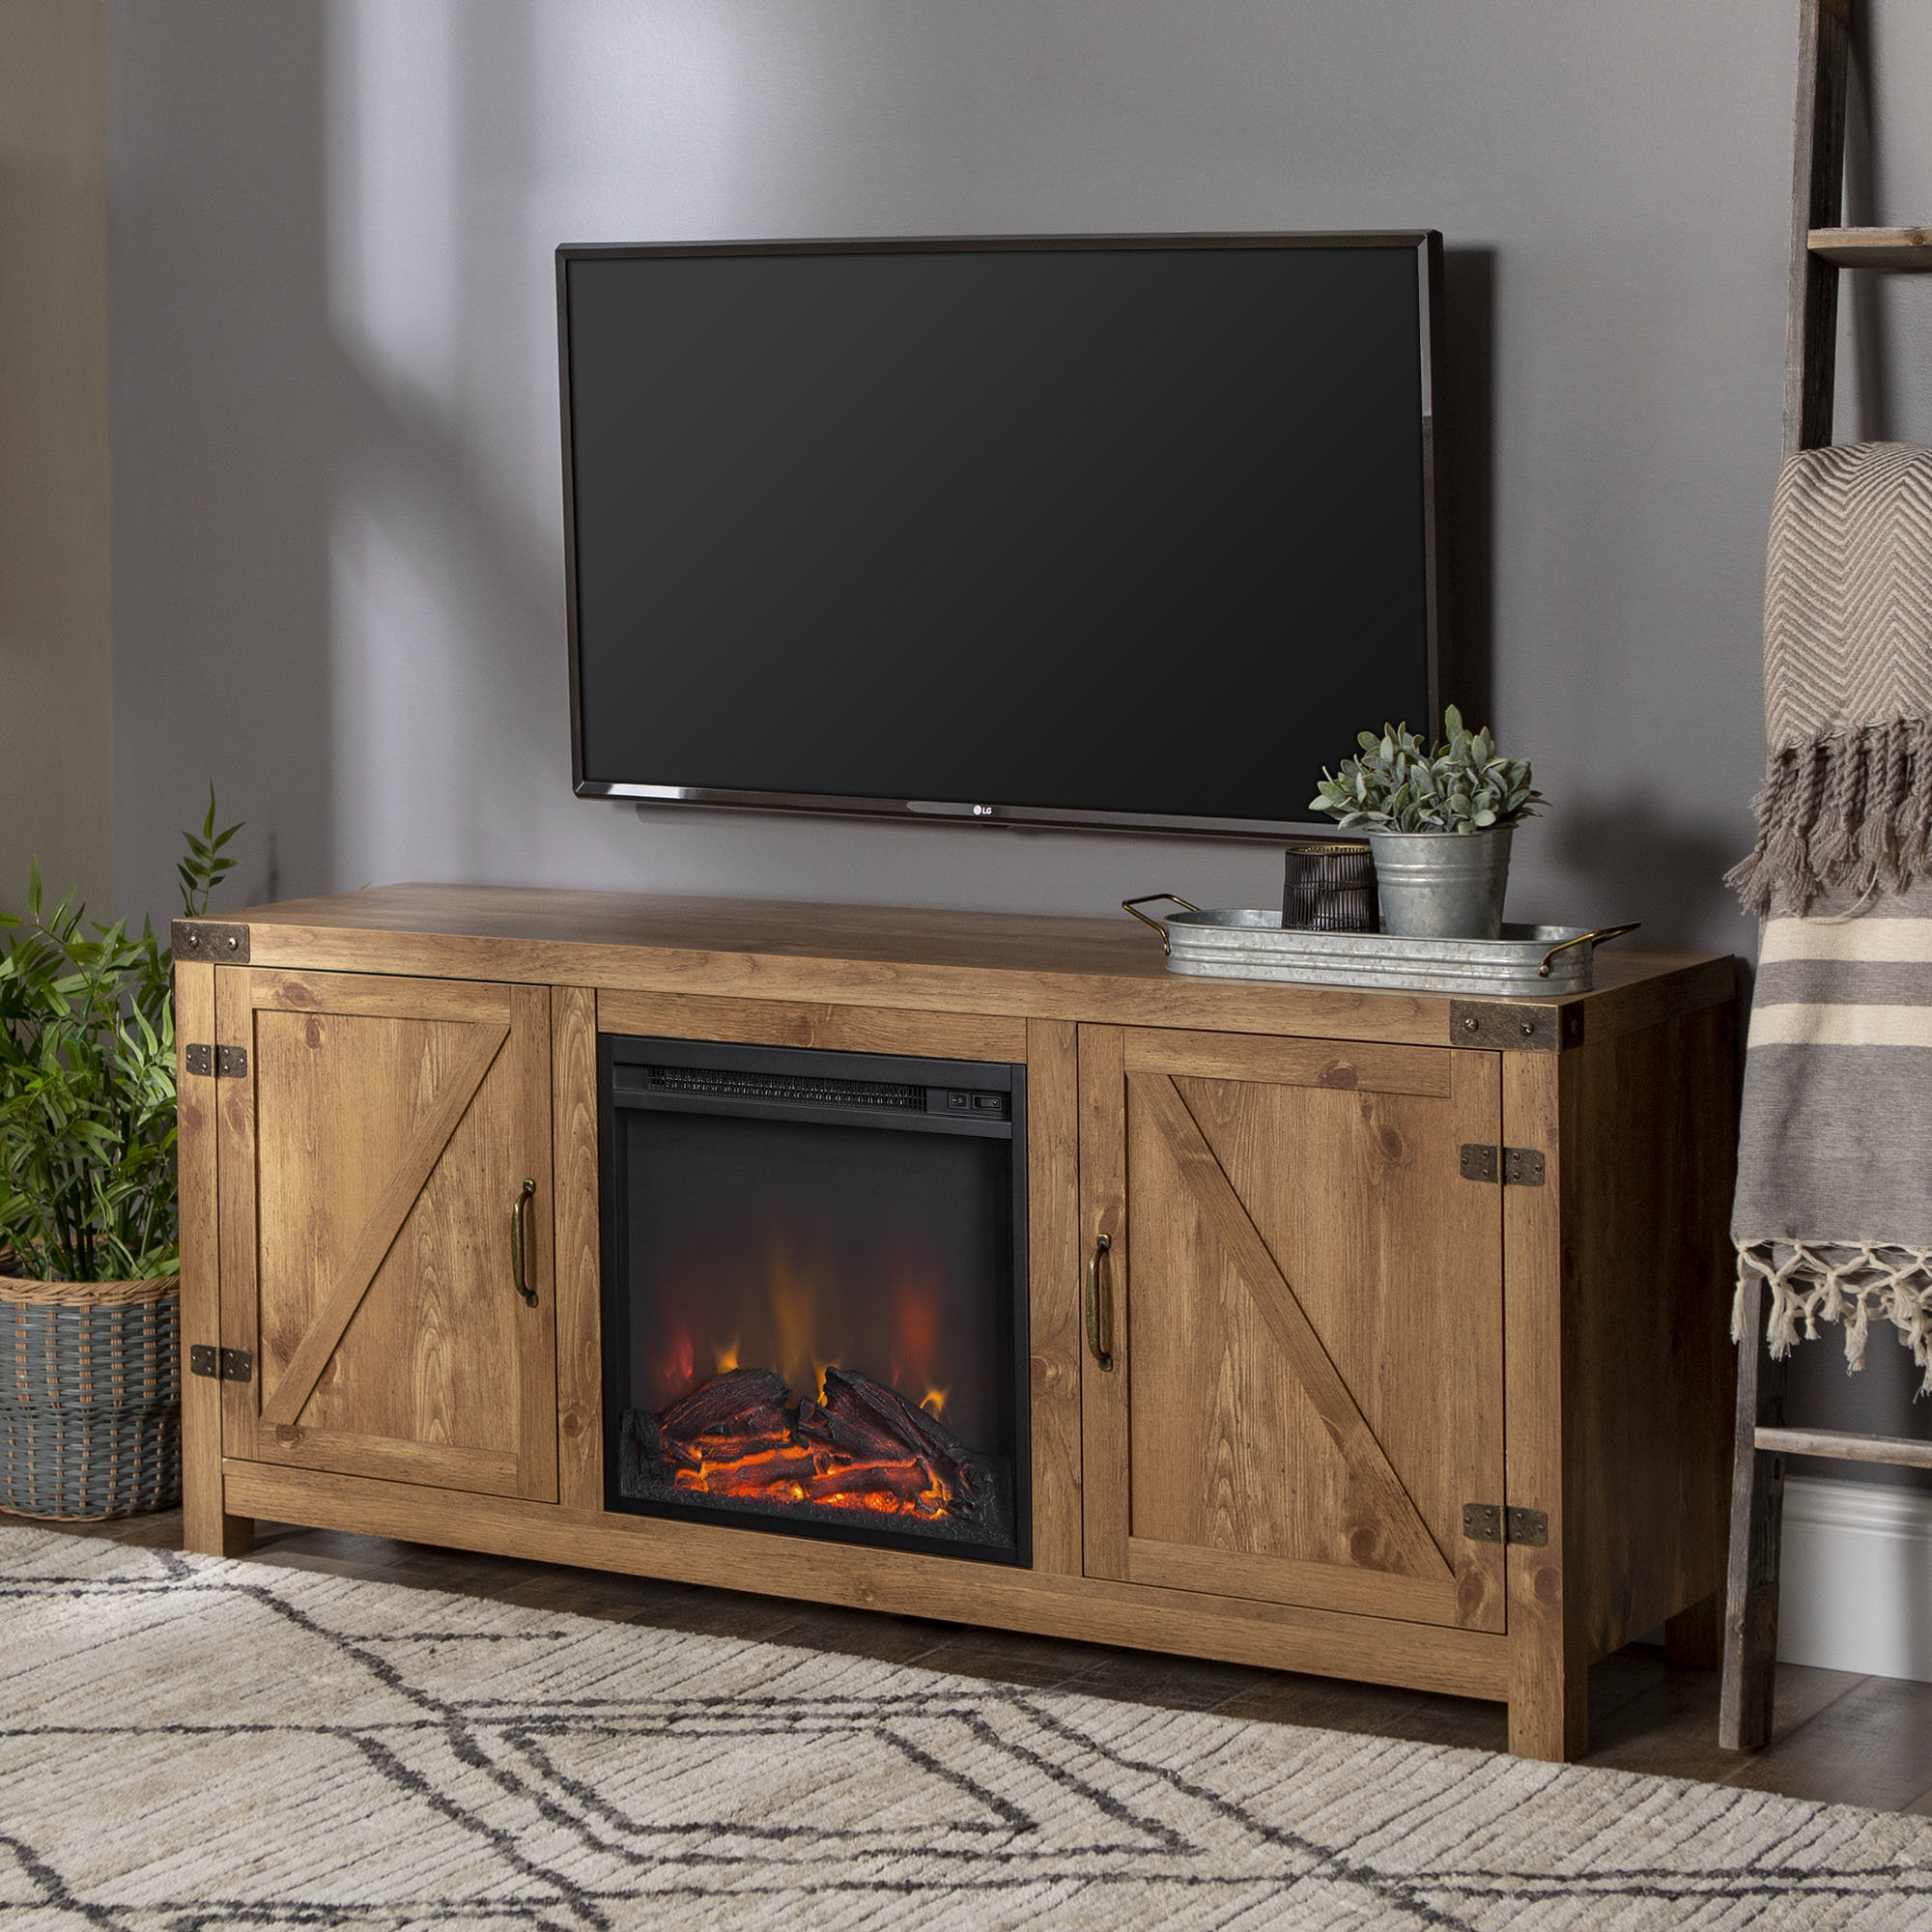 Fireplace Tv Stands & Entertainment Centers You'll Love | Wayfair.ca within Sinclair Blue 64 Inch Tv Stands (Image 9 of 30)